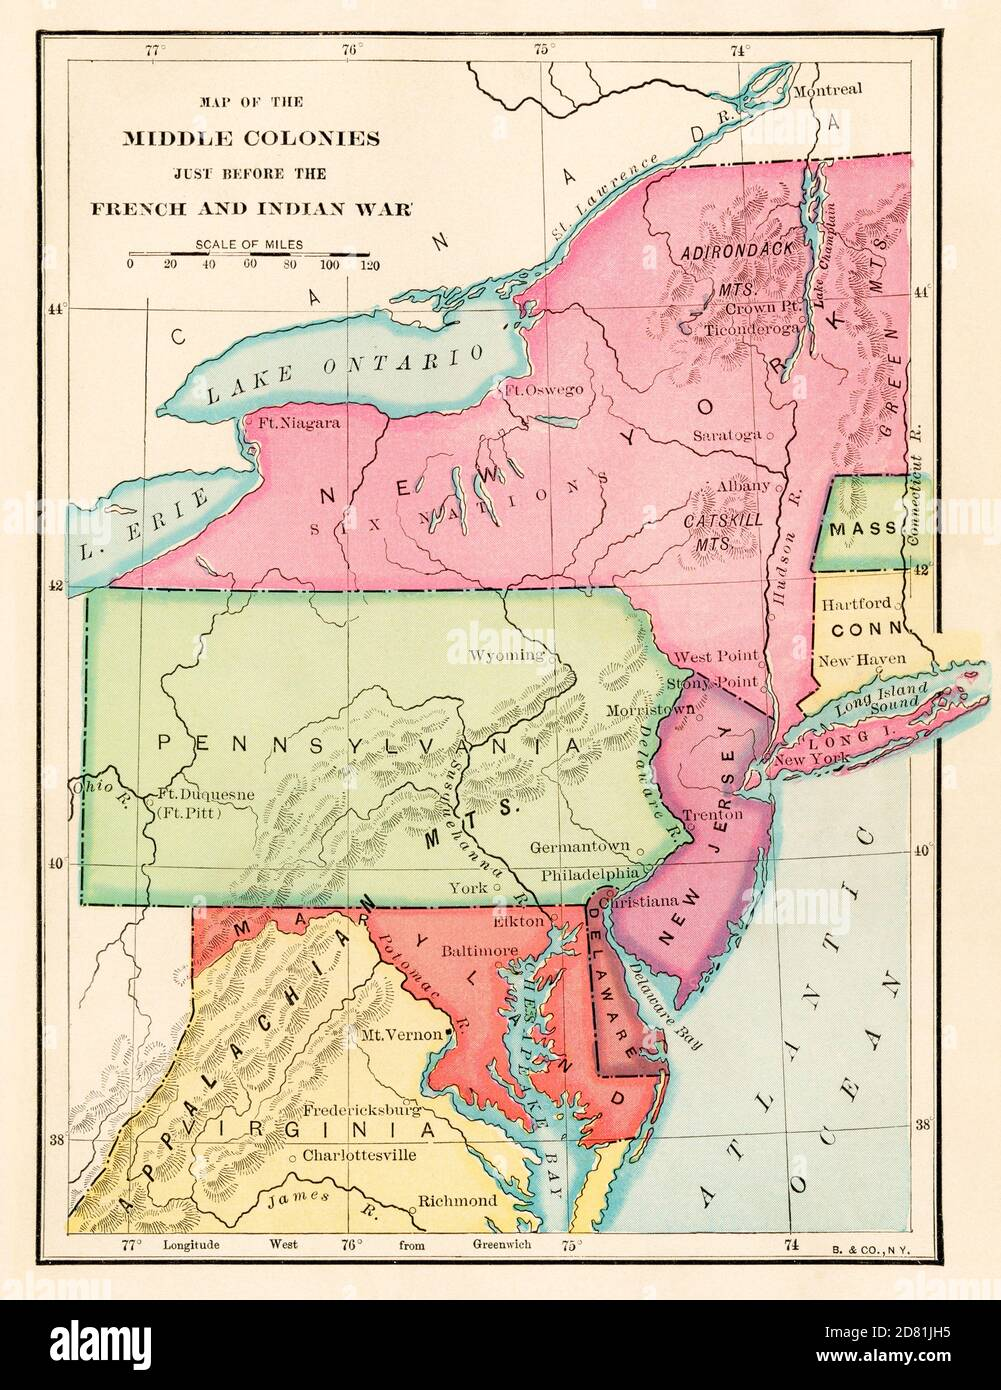 Middle colonies just before the French & Indian War, 1750s. Color halftone Stock Photo